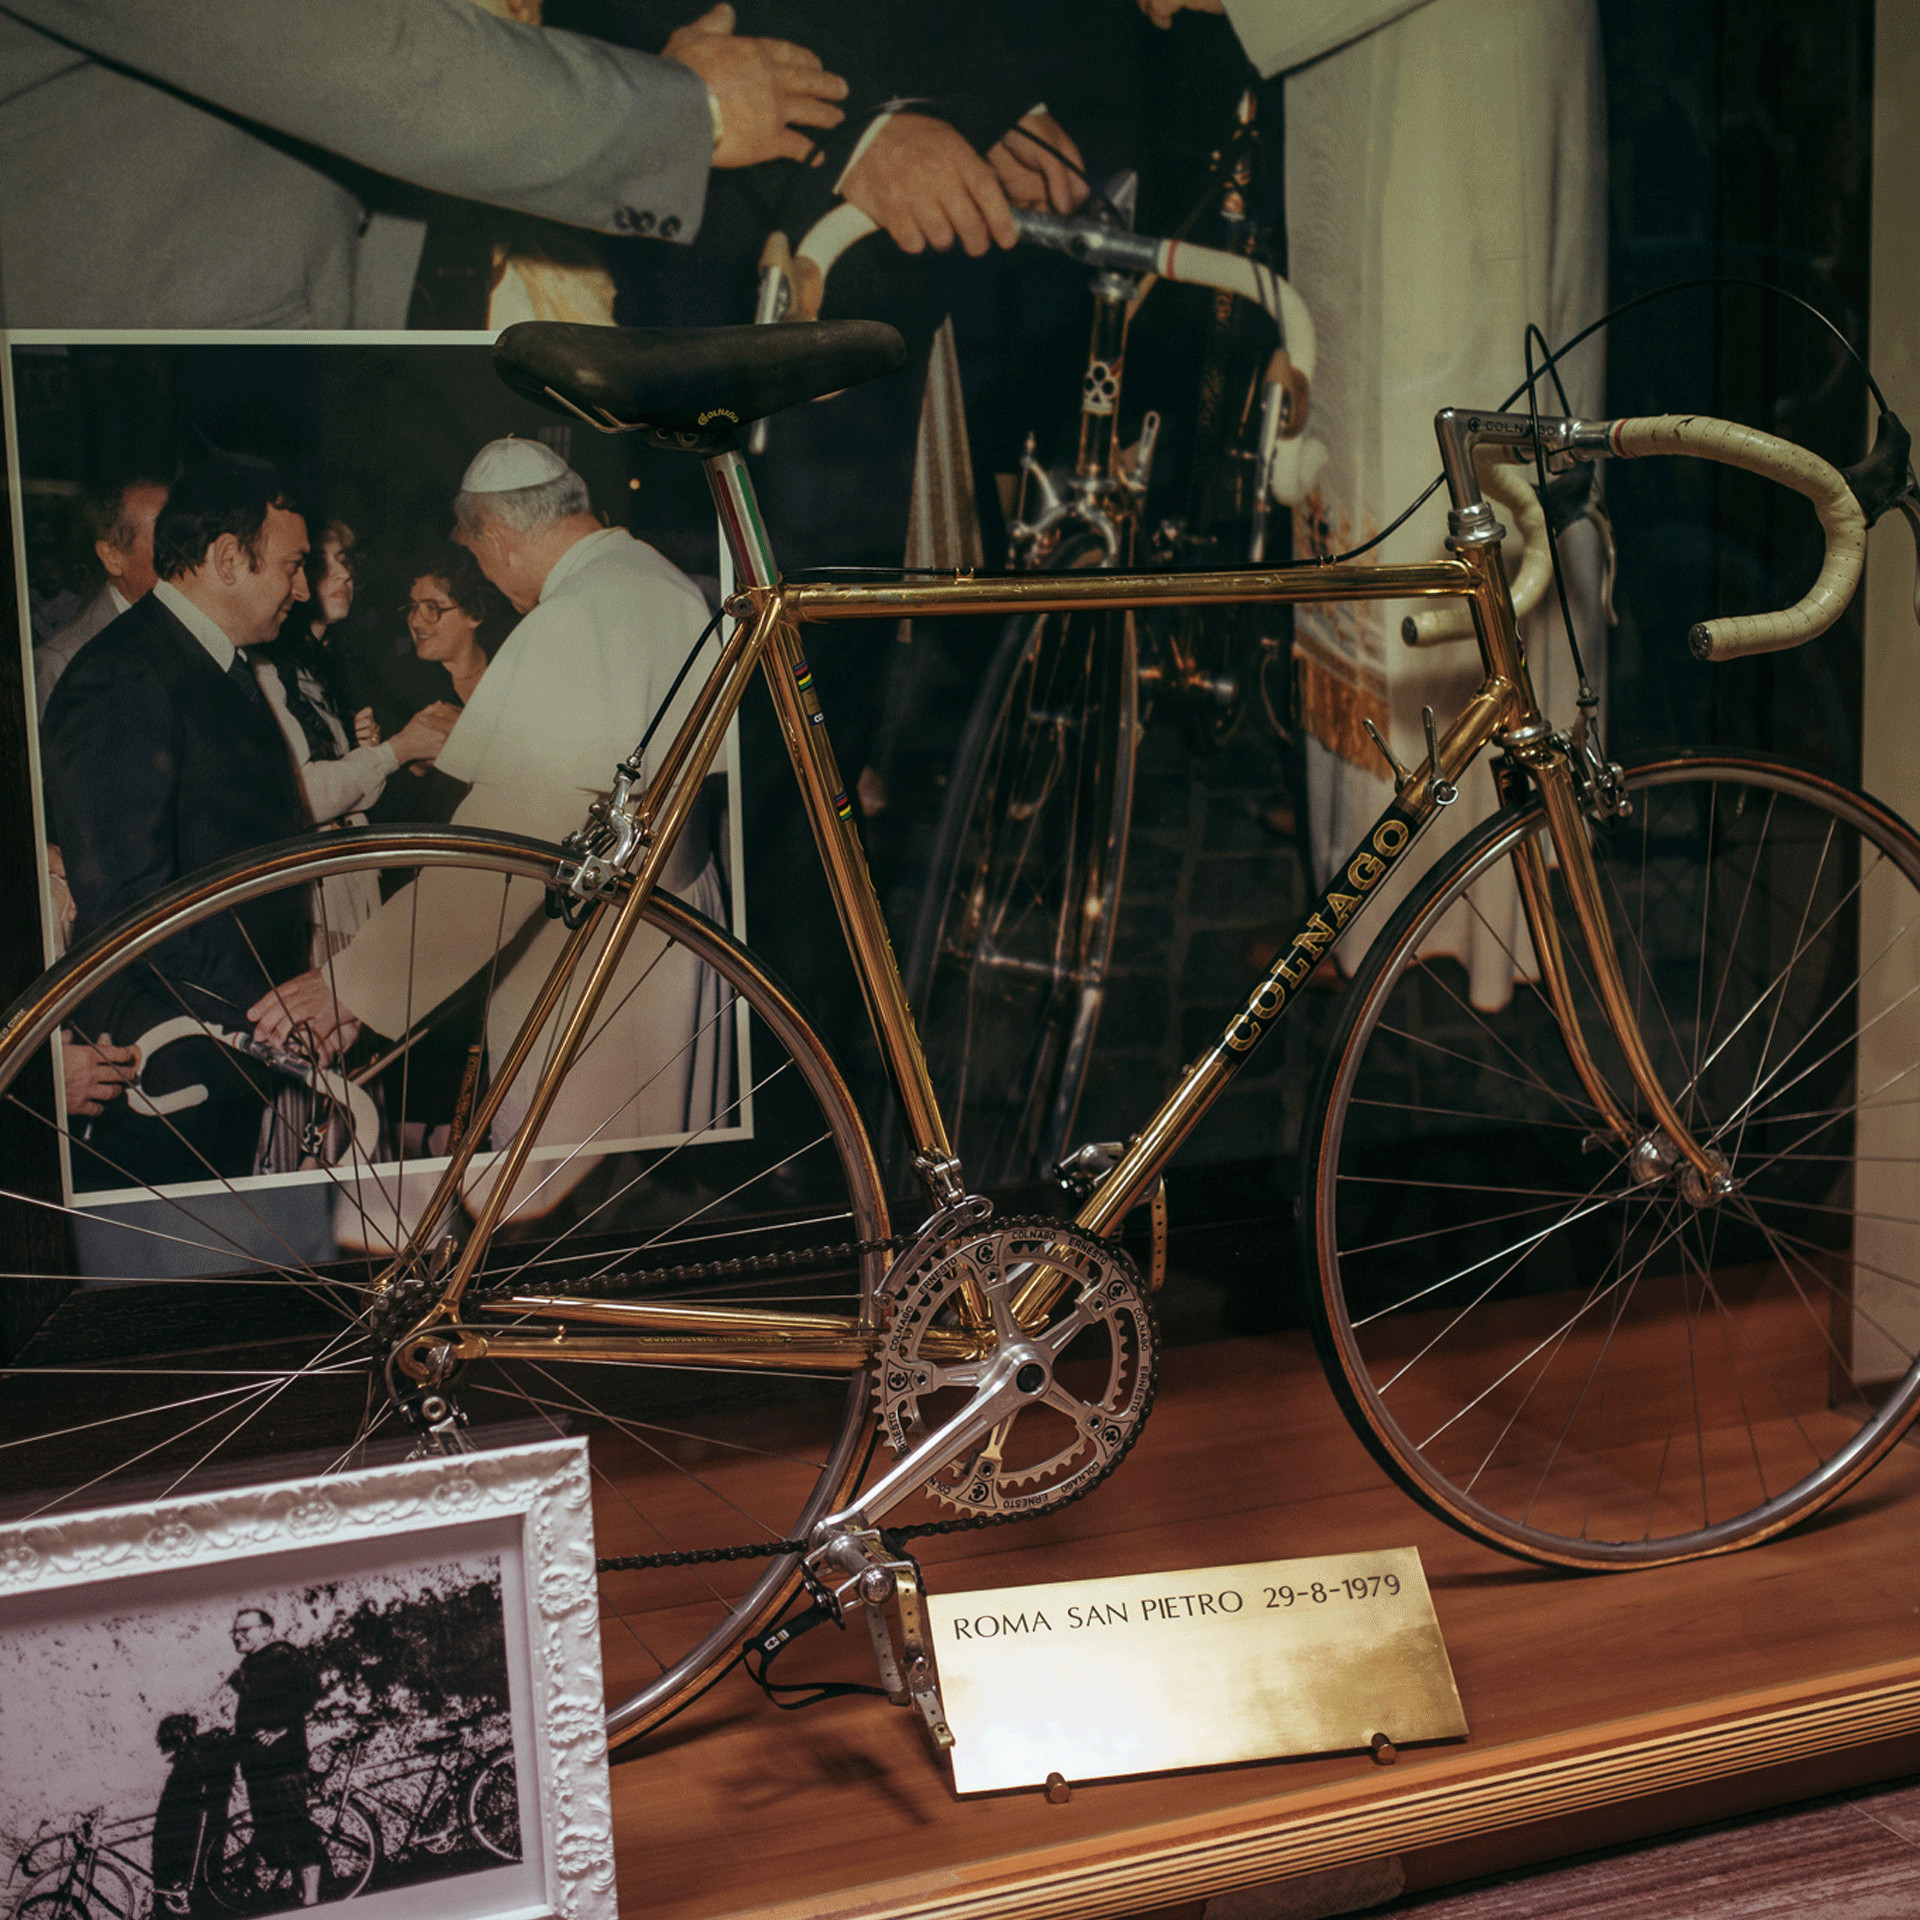 Ernesto made a beautiful and very special Mexico gold bike for Pope John  Paul II in 1979. Constructed from steel and plated in 18 carat gold 939f80bb7